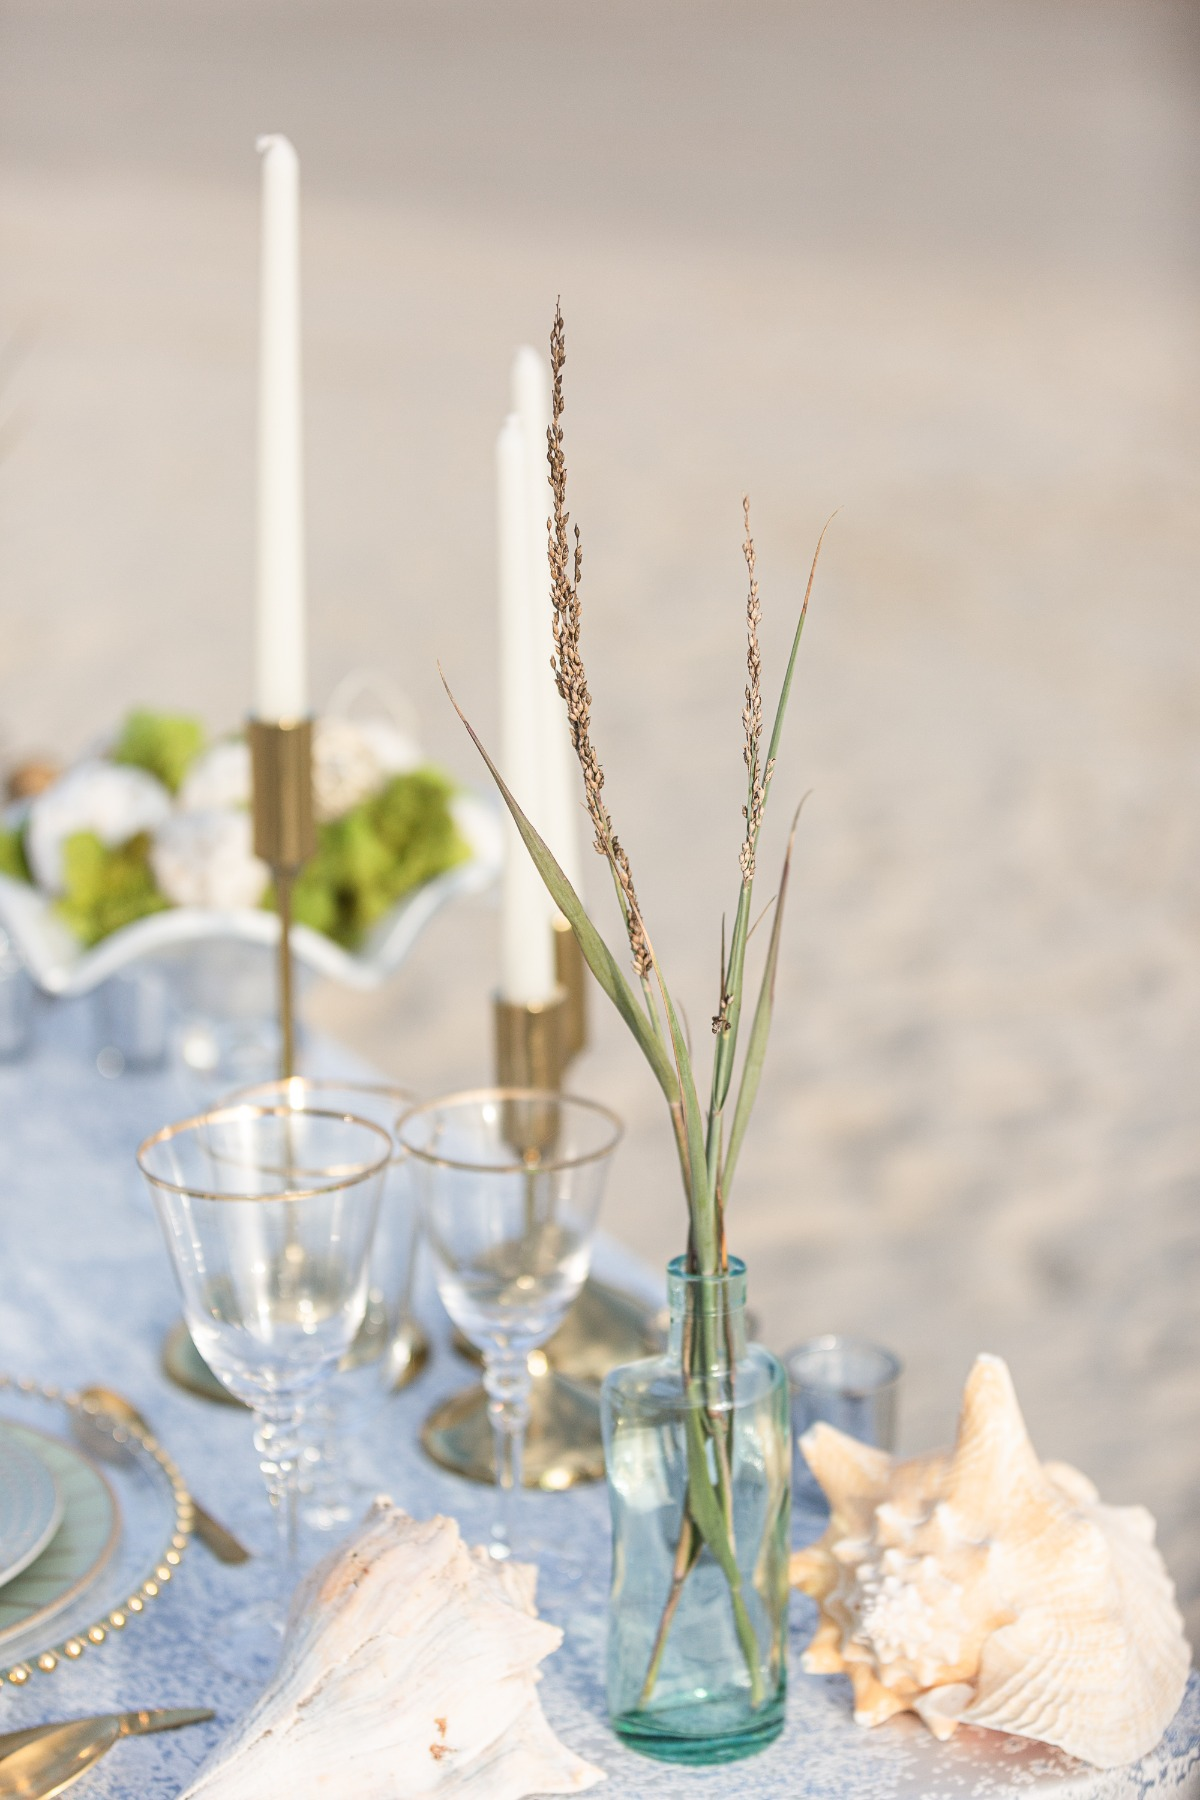 sea grass placed in glass bottle